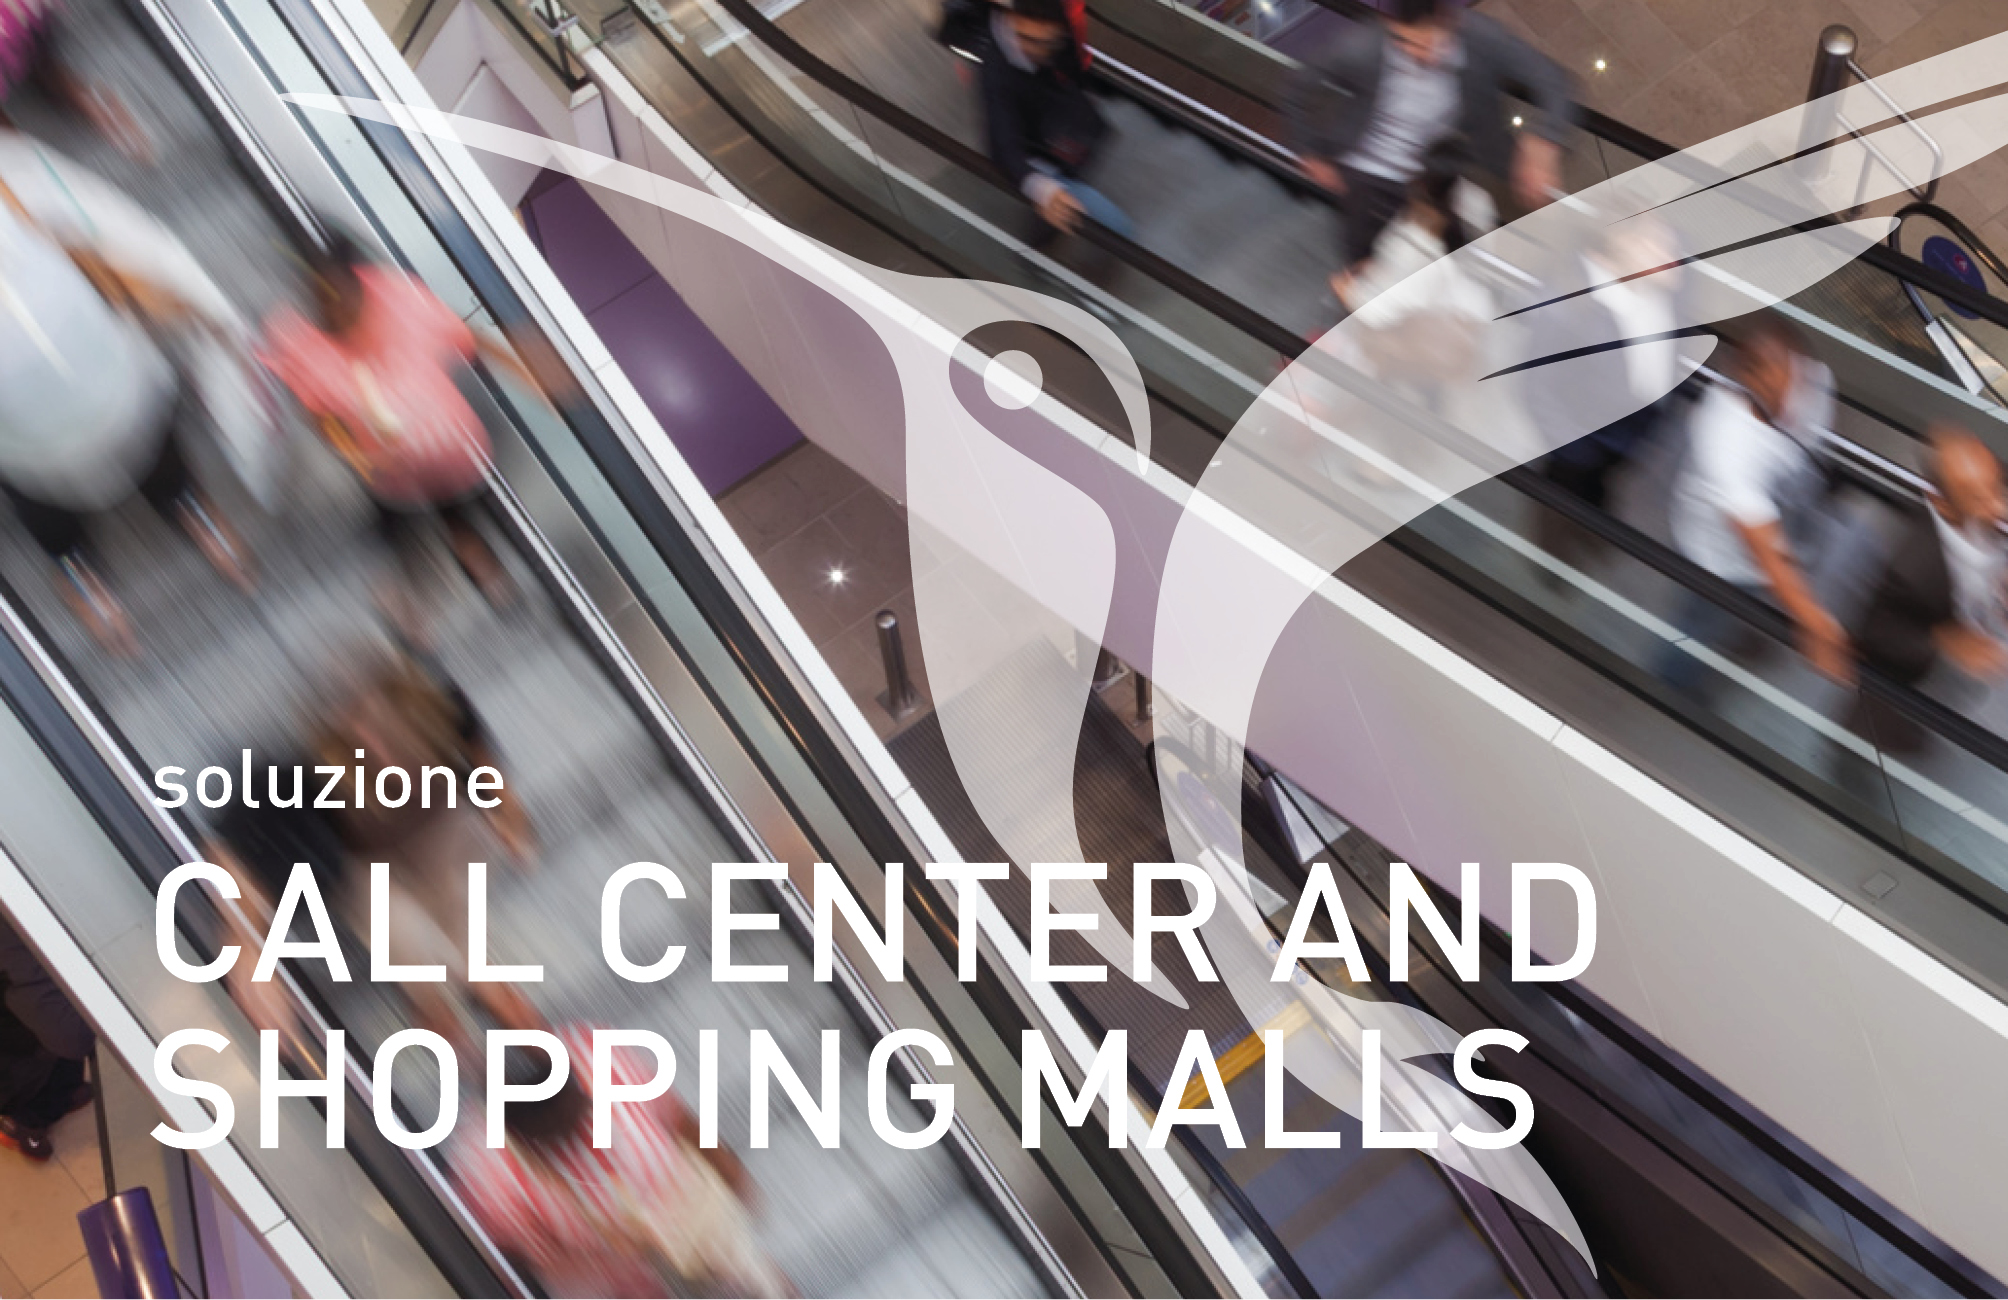 call center and shopping malls